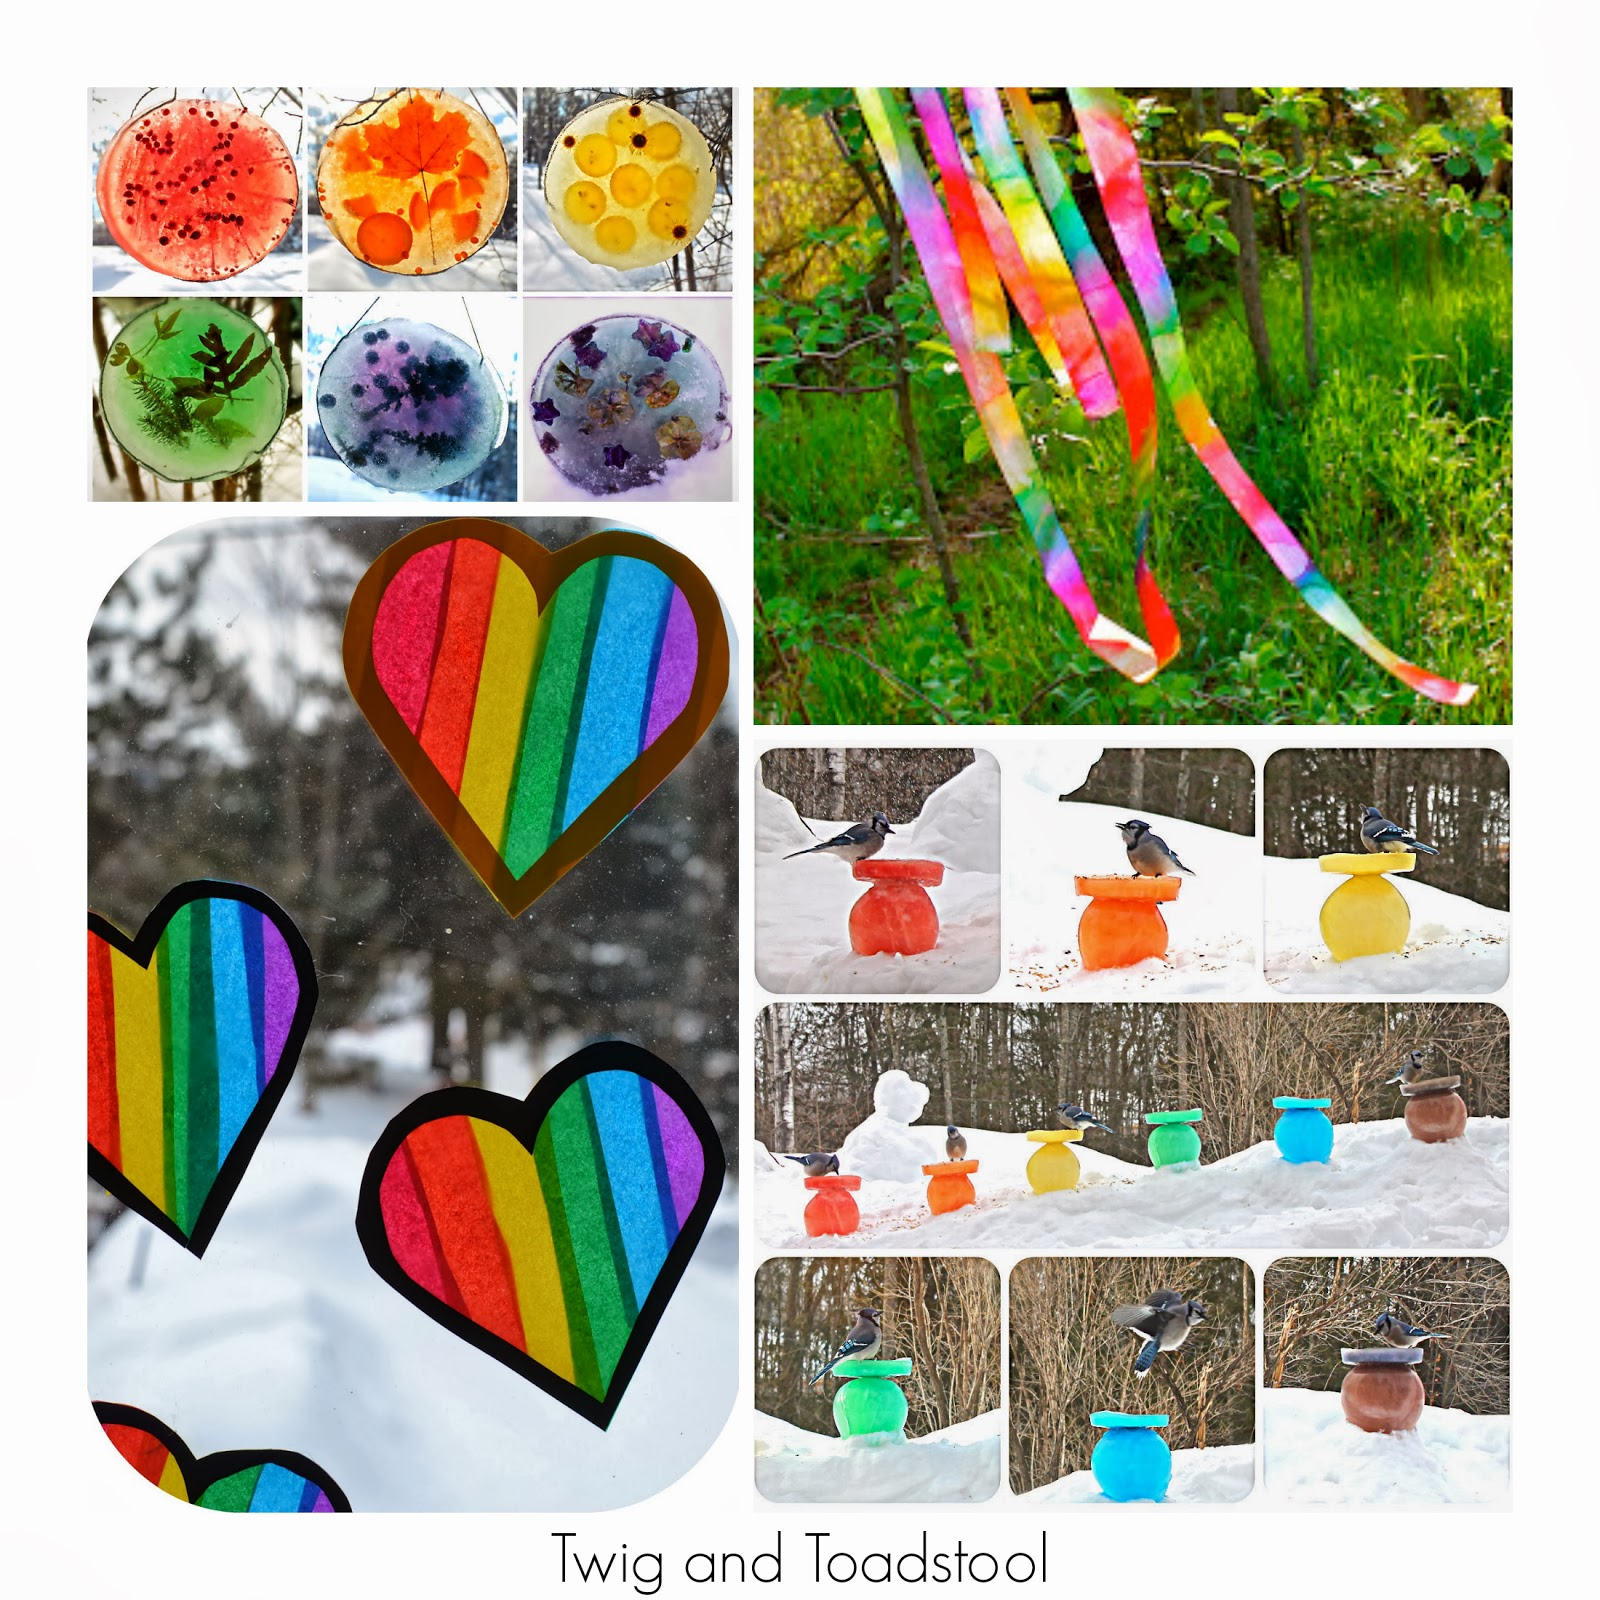 36 Rainbow Activities For Babies Toddlers Preschoolers And Older Kids From Fun At Home